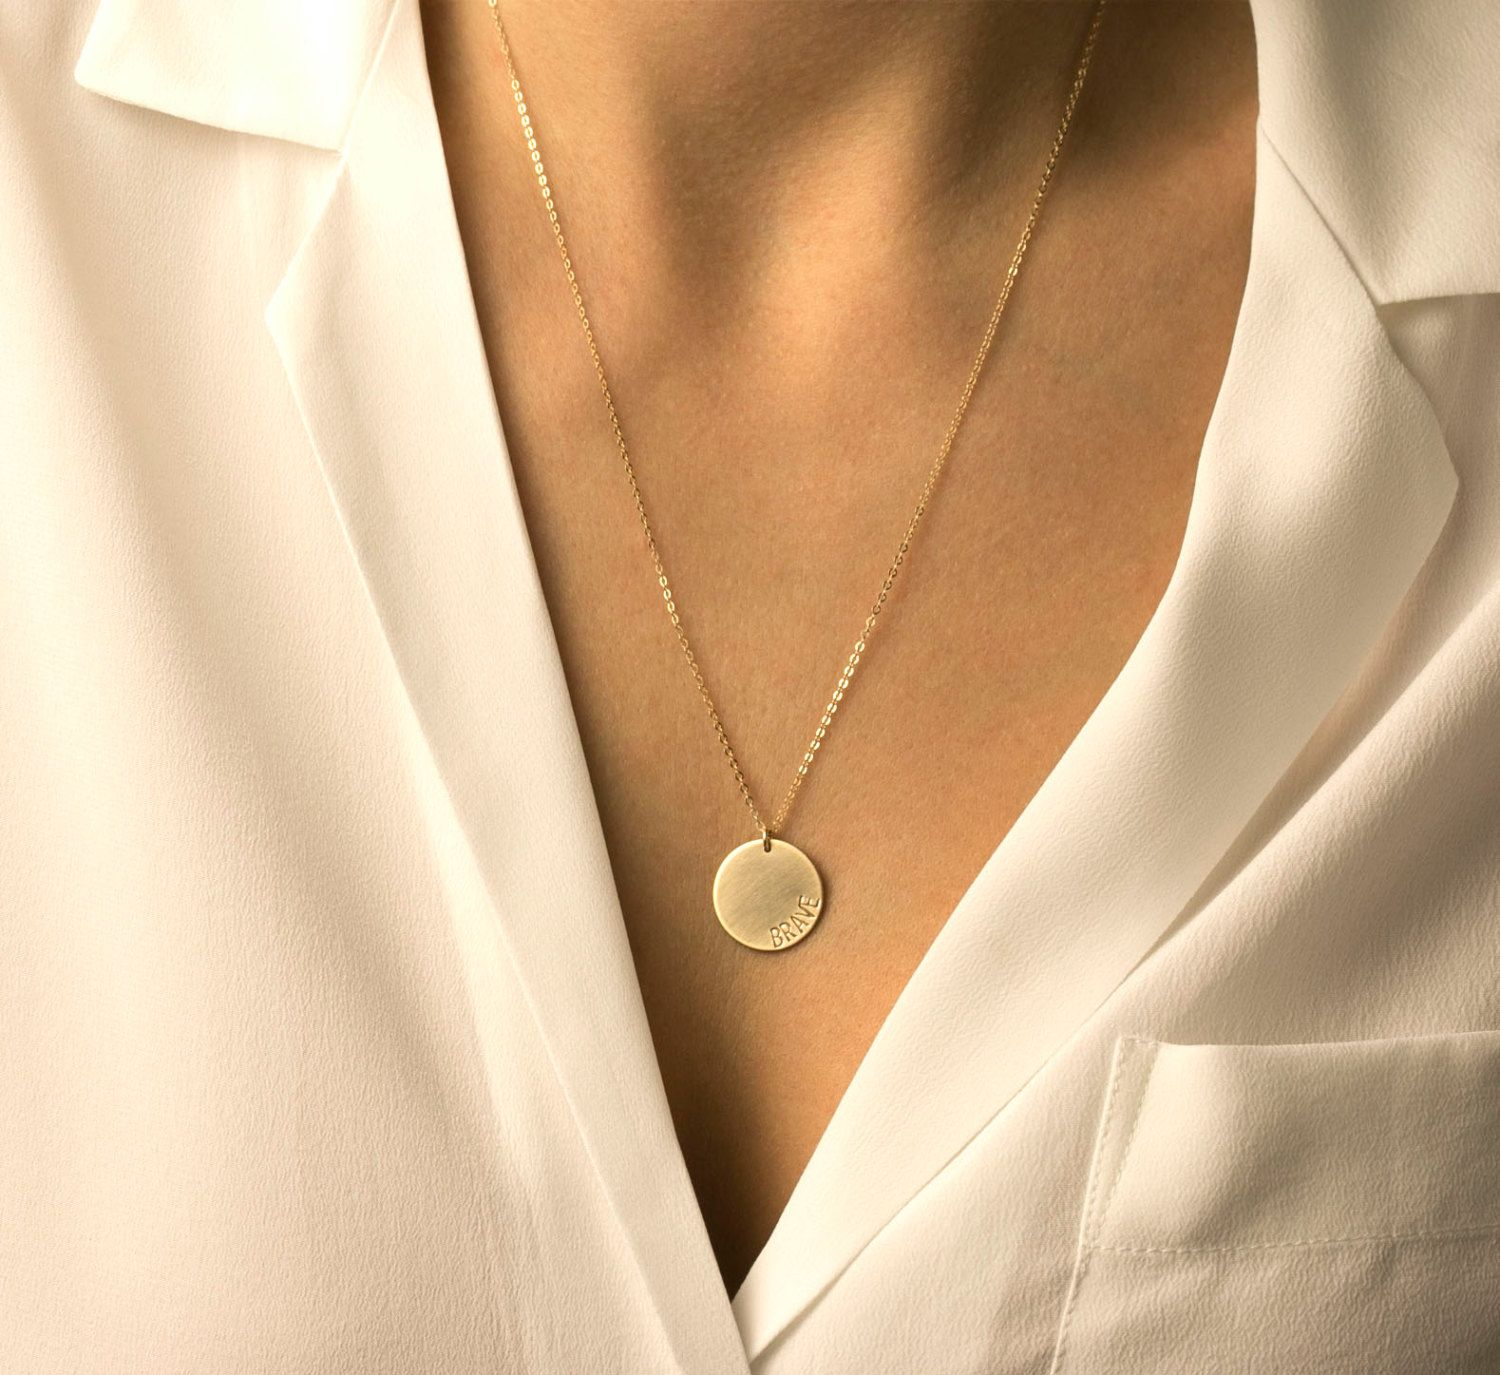 Blank or personalized gold tag necklace simple modern everyday large gold circle necklace everyday necklace large disk necklace brushed gold circle pendant on gold fill chain layered long aloadofball Gallery